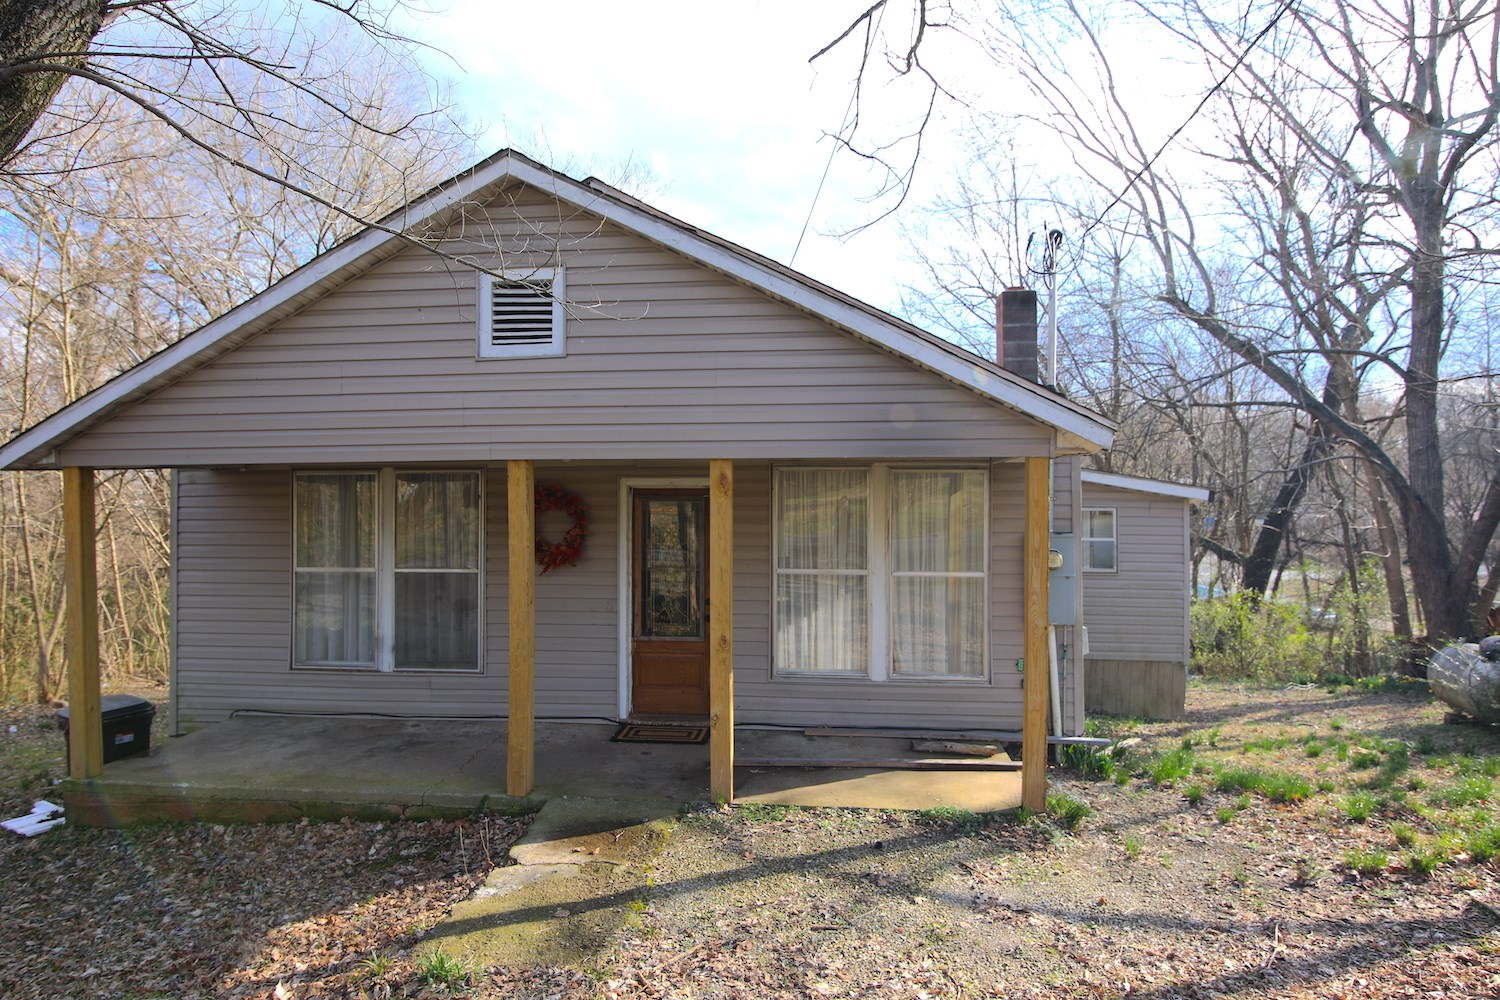 Two Bedroom House in Mammoth Spring, AR